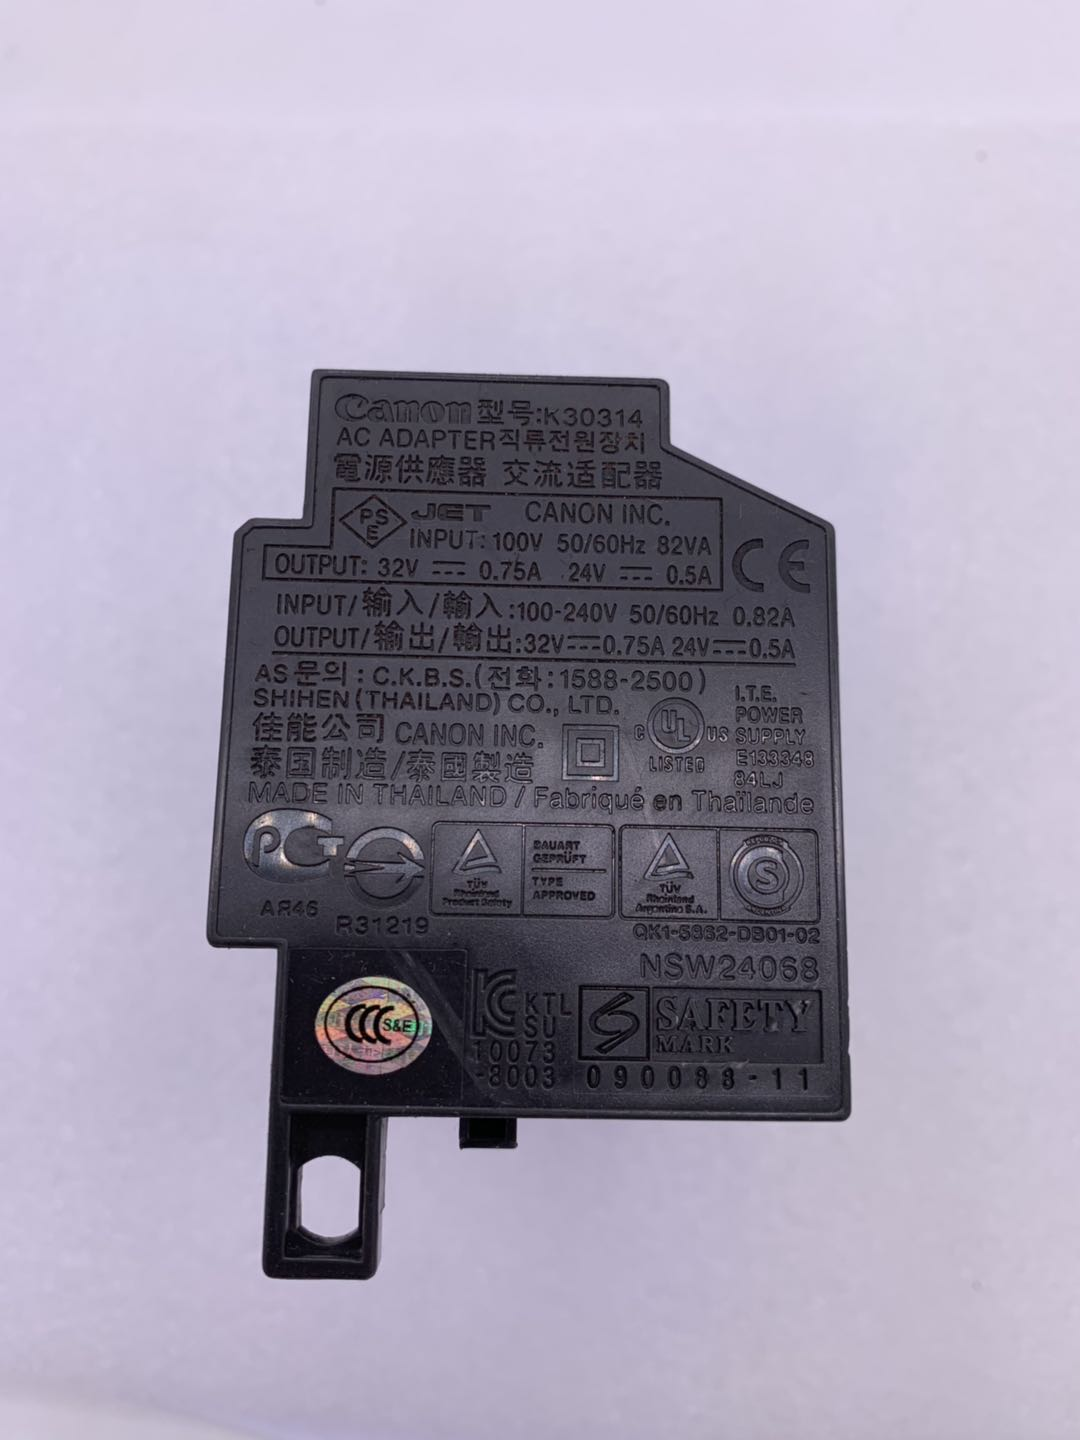 K30314/K30304 Power Supply Adapter QK1-5862 For Canon IP4920 MG5320  MG5220